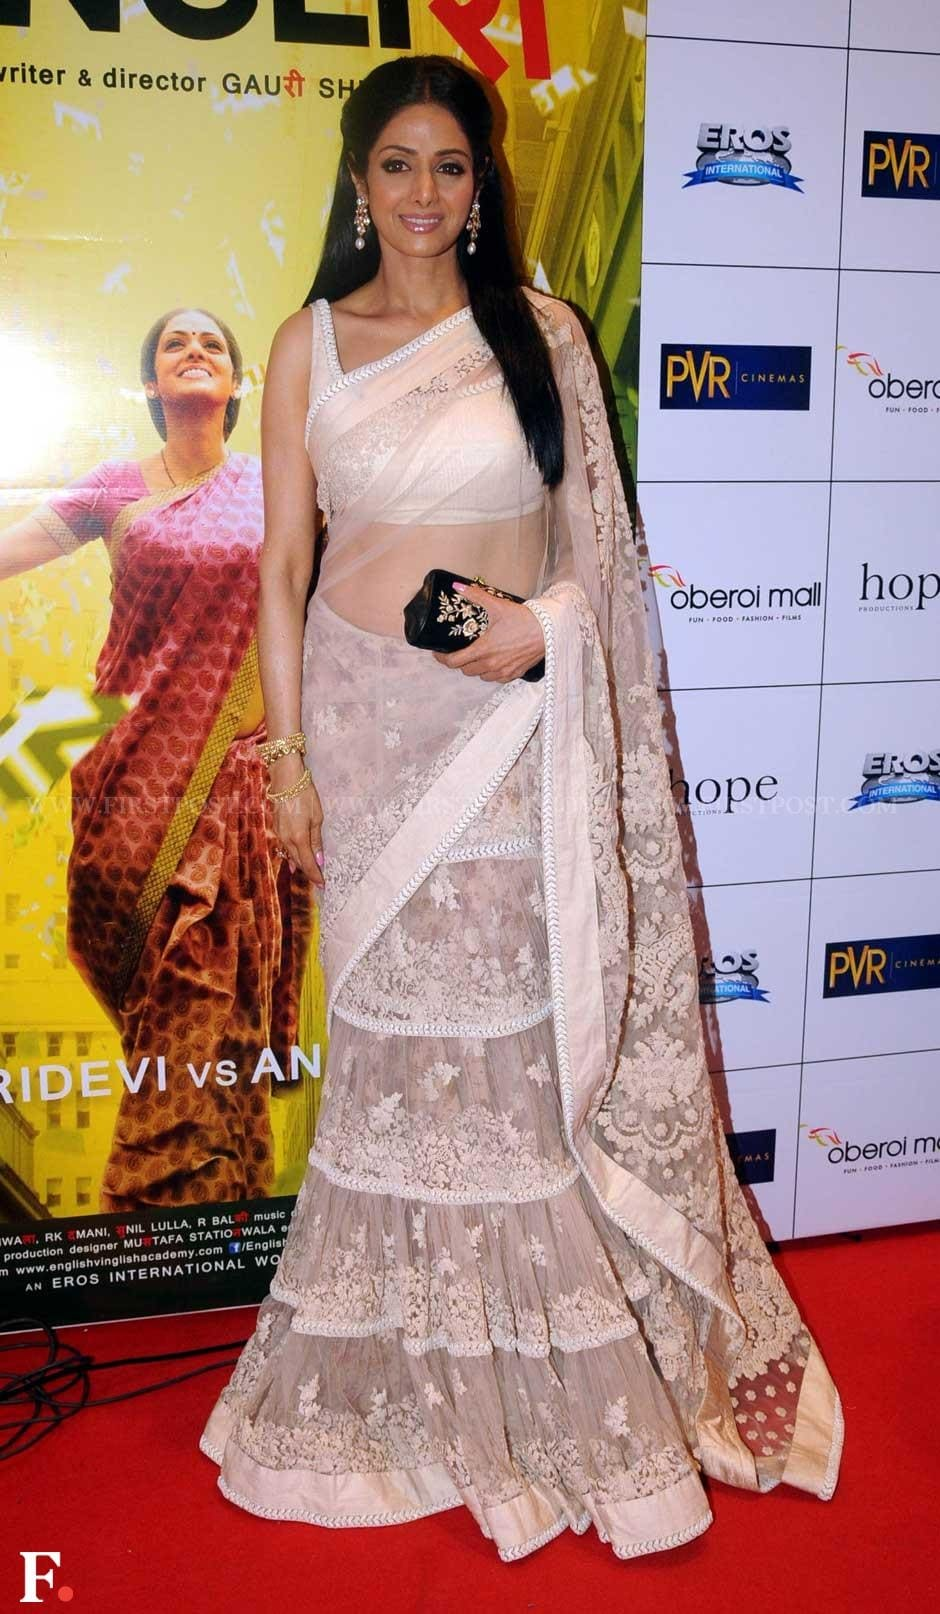 Sridevi at the premiere of her film English Vinglish. Sachin Gokhale/Firstpost